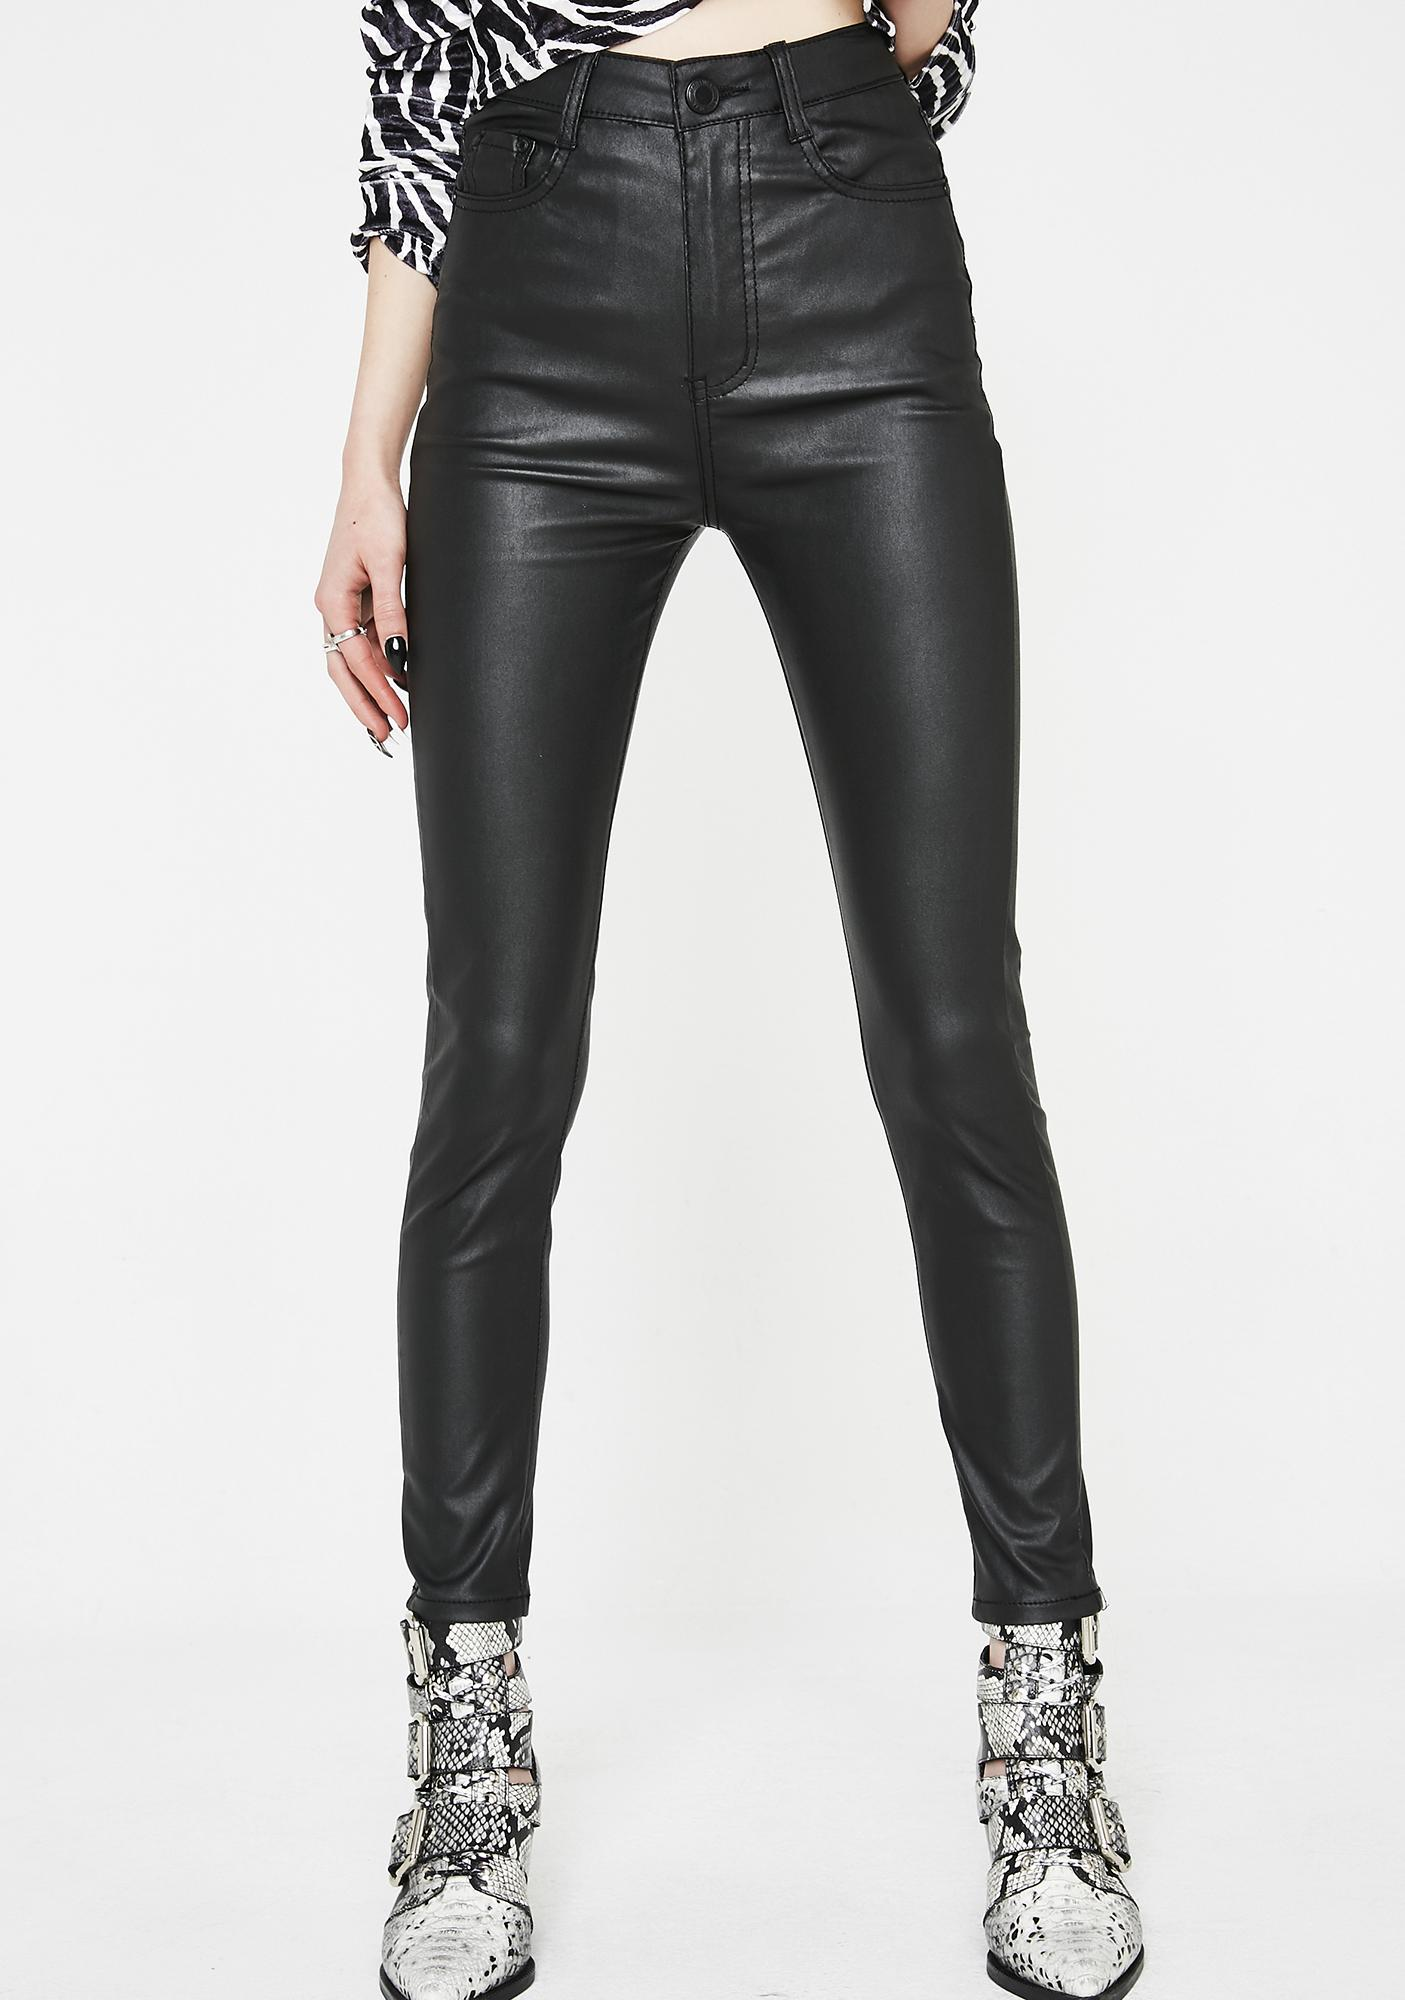 Momokrom Vegan Leather Skinny Pants